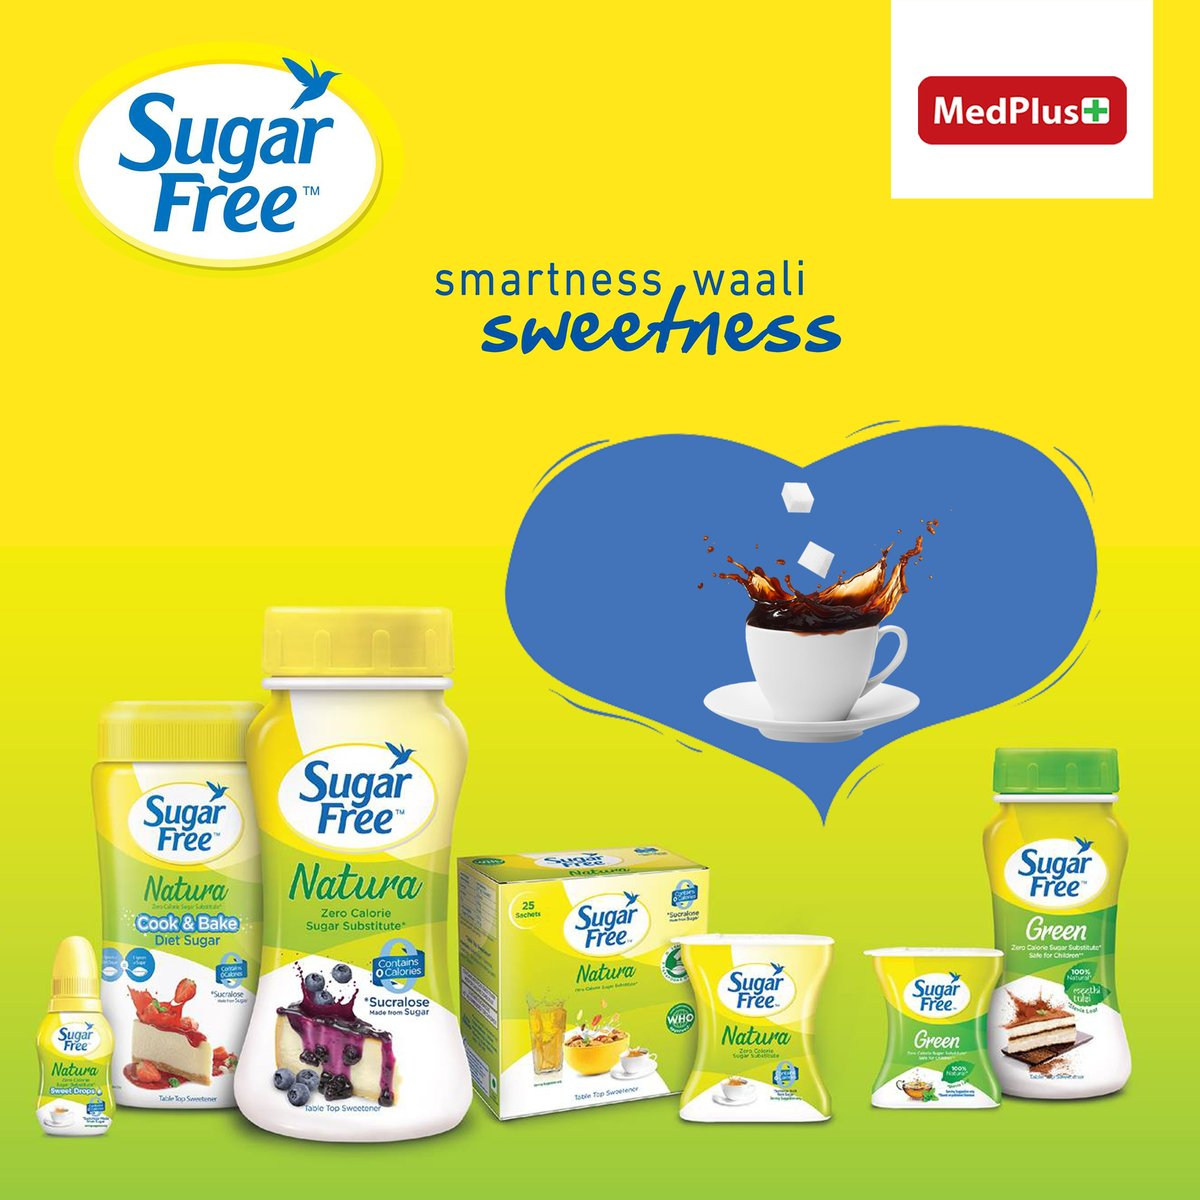 With lowcalories, live life kuch zyada https t.co rP8RVzSWlh Now at up to 25 OFF sugarfree medplusmart https t